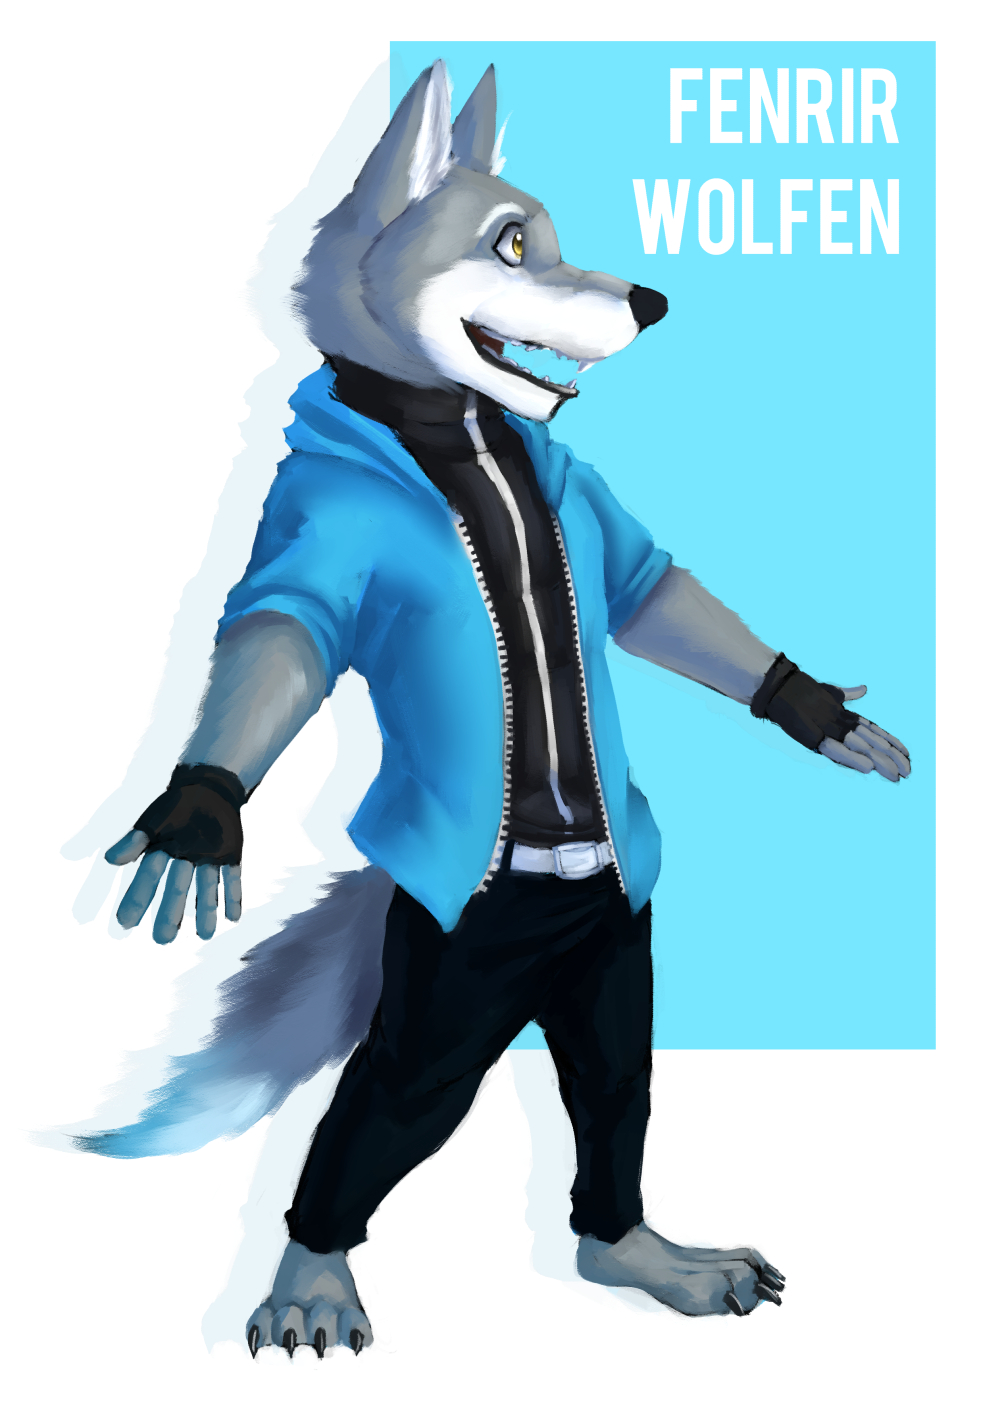 If I'm in Zootopia